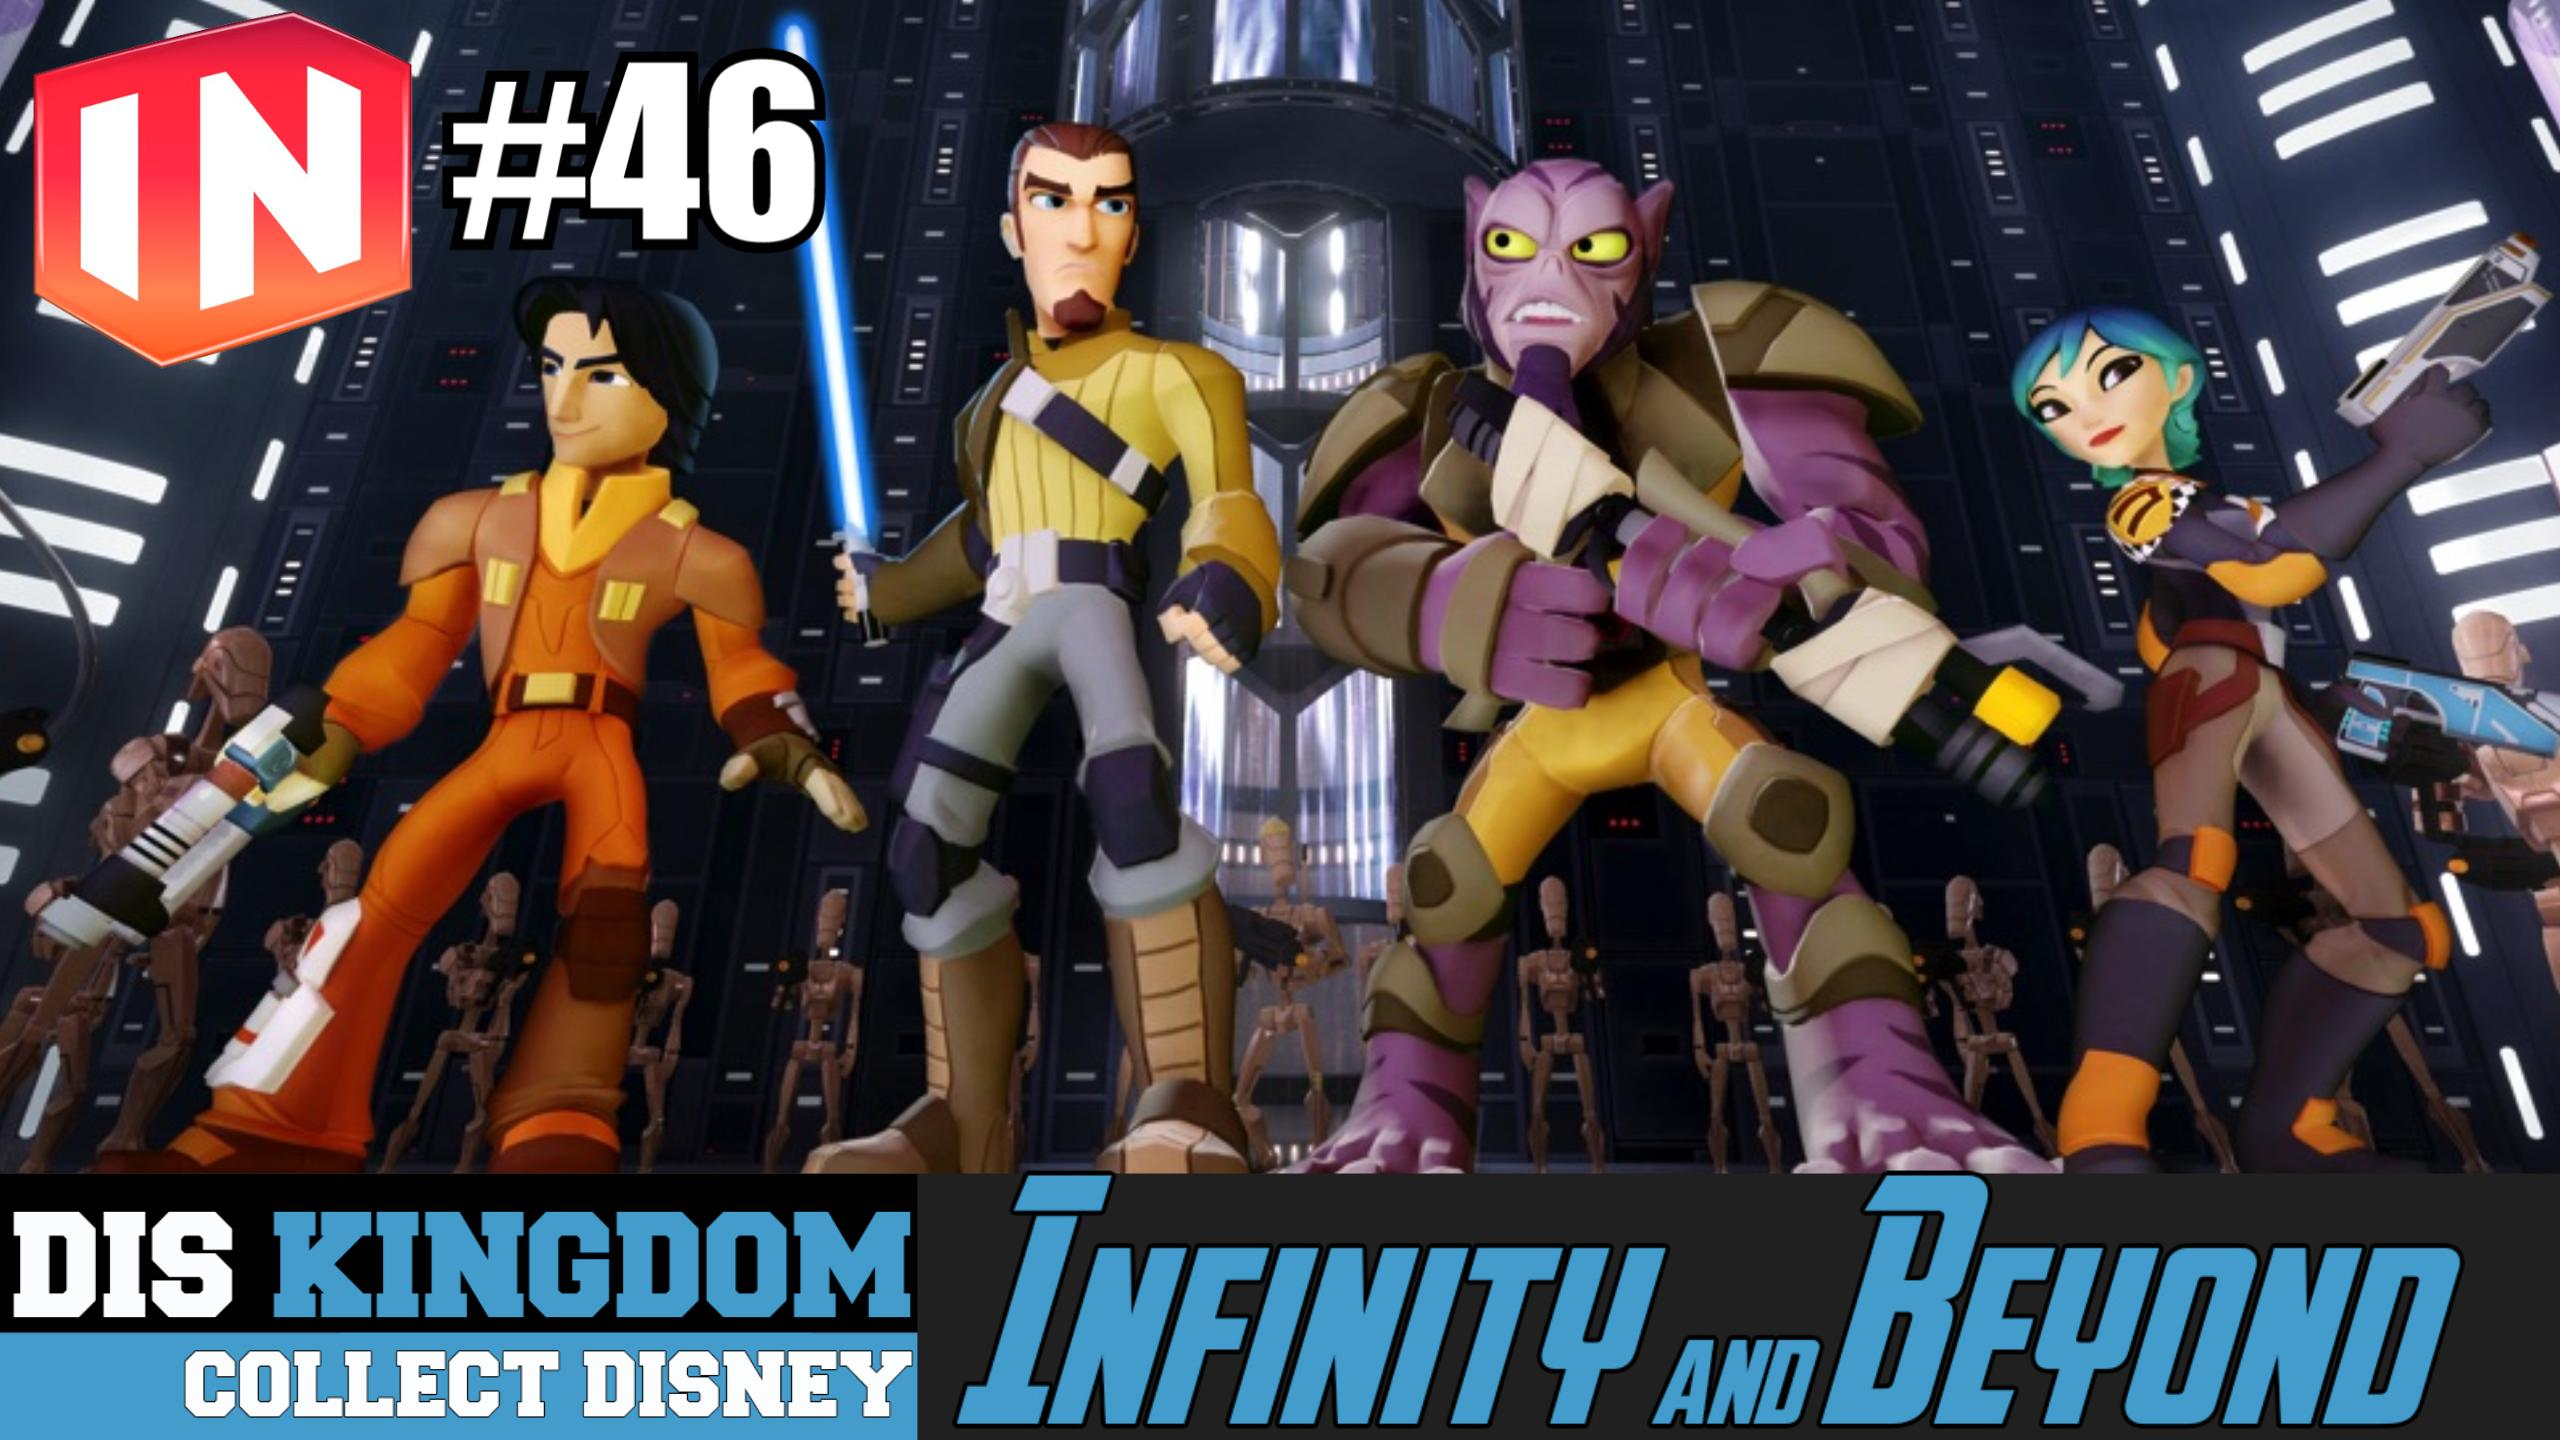 Disney Infinity 3 0 Beyond 46 E3 Star Wars Rebels Inside Out Much More Diskingdom Com Disney Marvel Star Wars Merchandise News